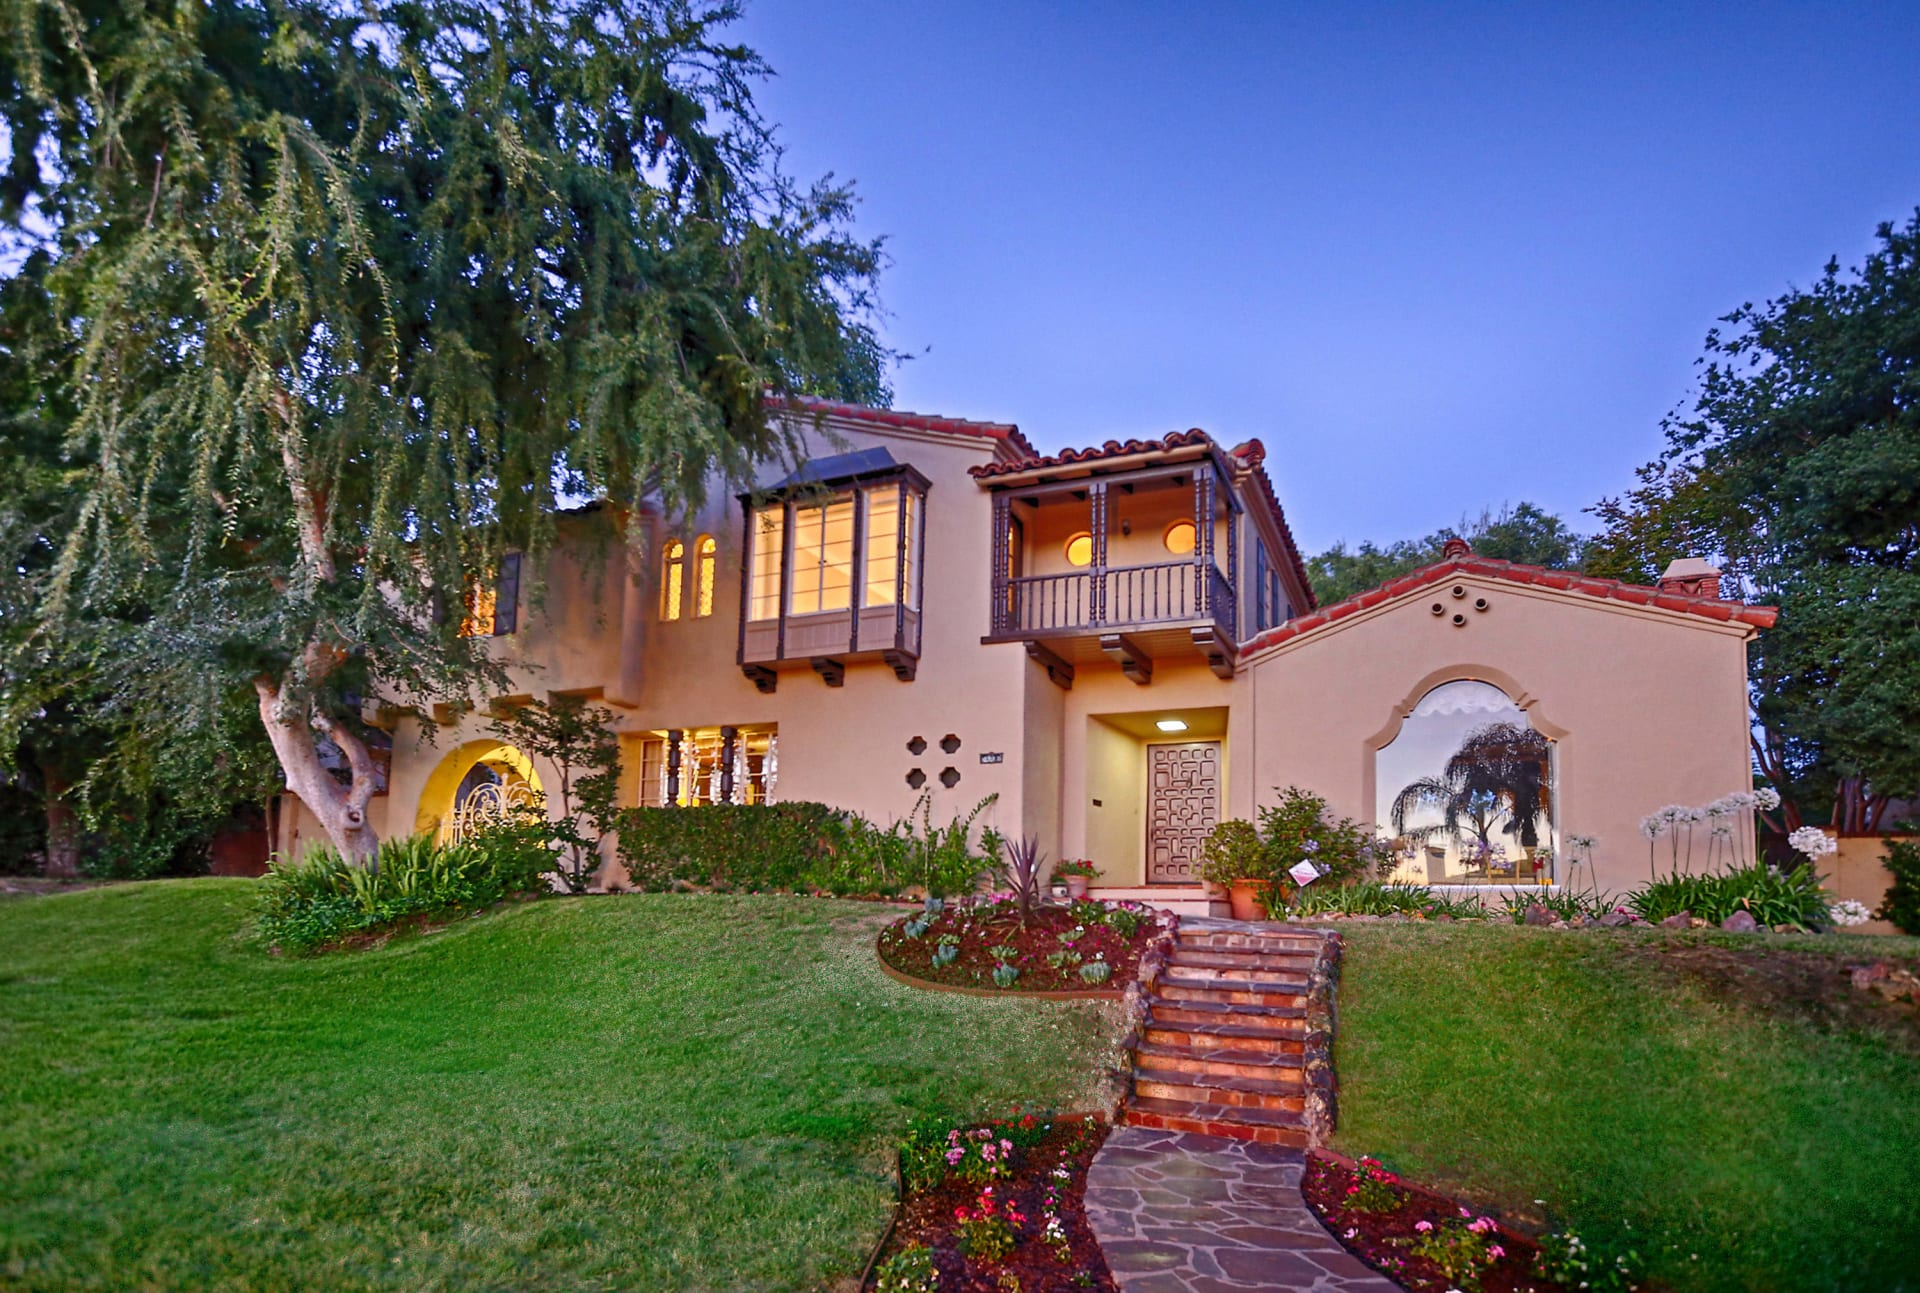 Sold by Edwin Ordubegian!! Character Spanish Revival- 1212 Rossmoyne Ave video preview